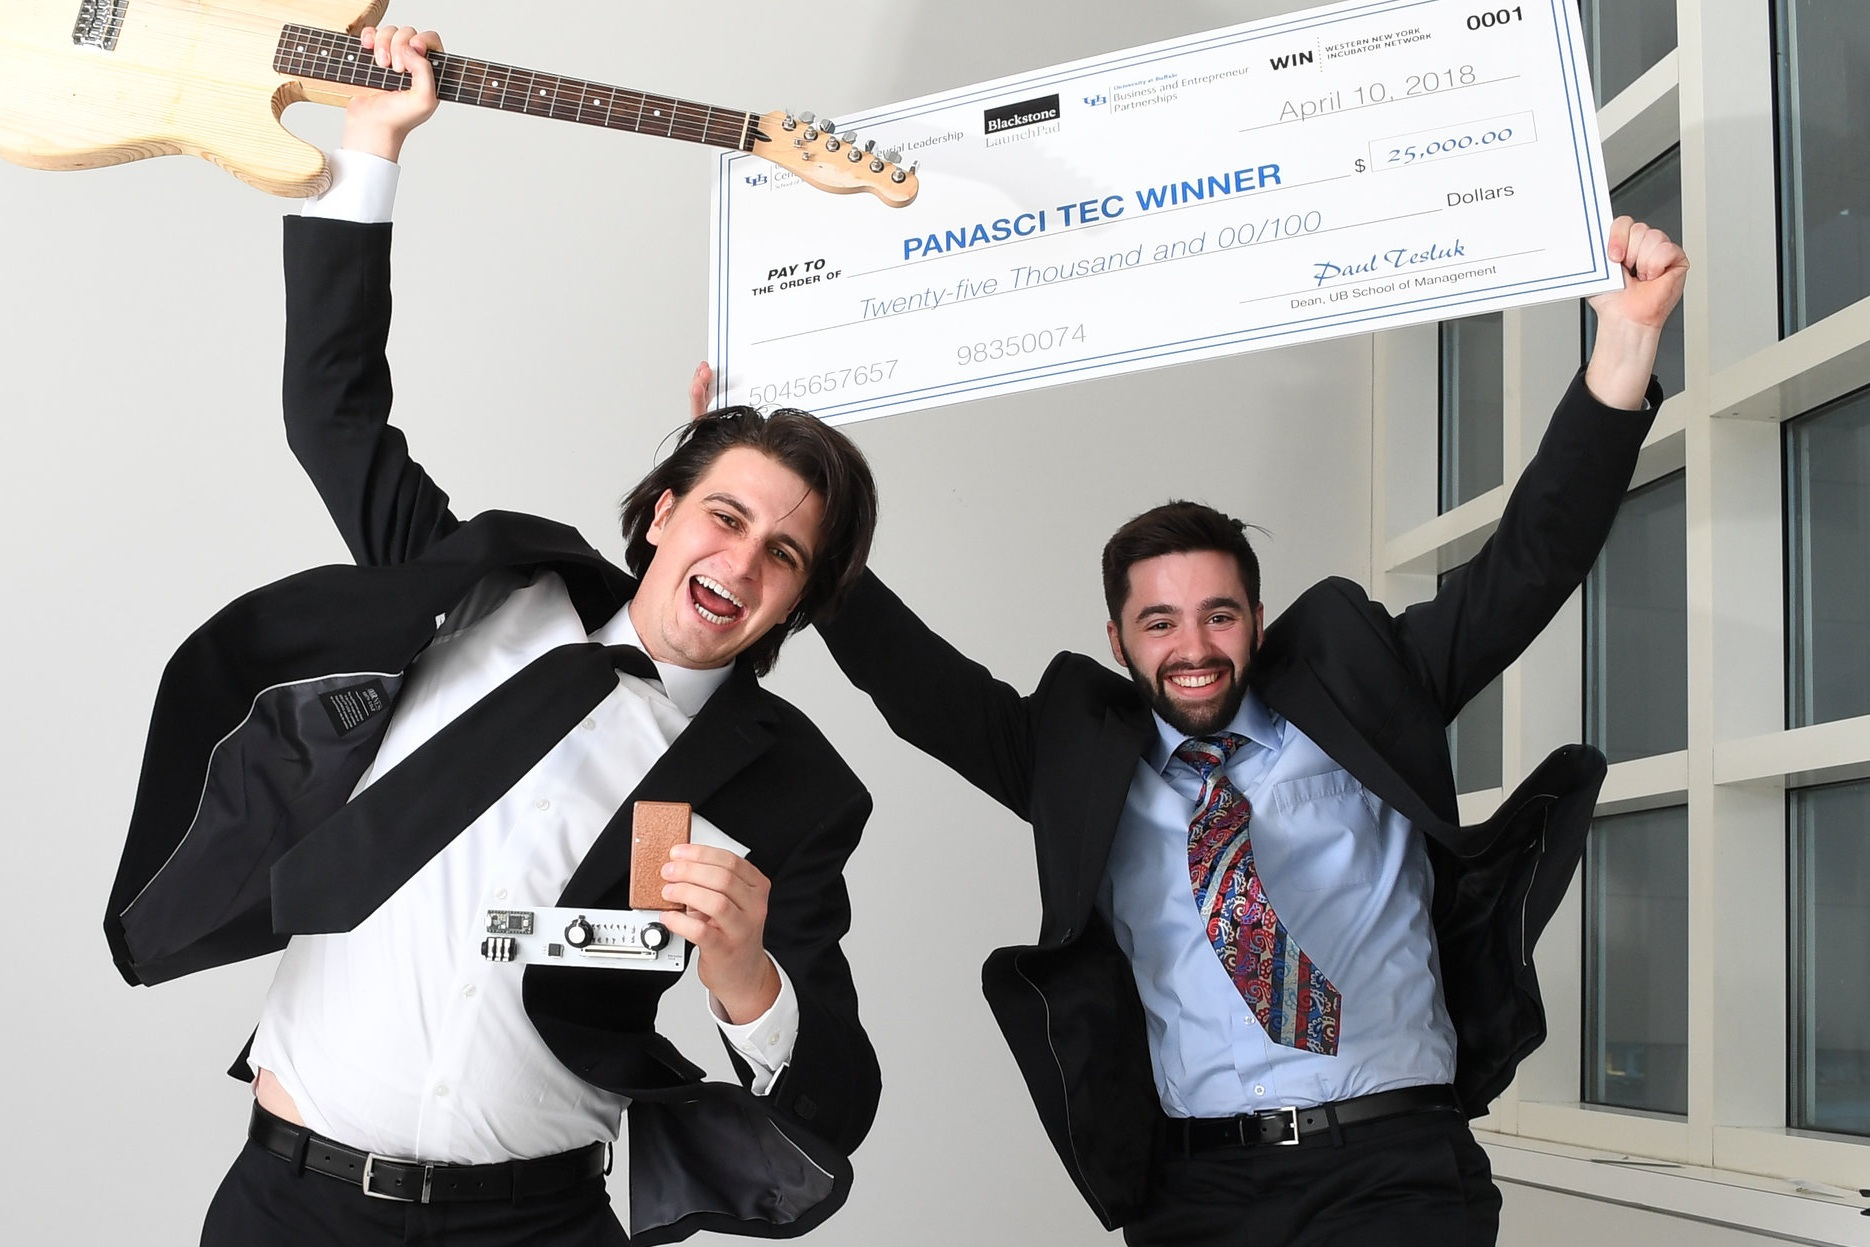 Shane Nolan(left) and Ryan Jaquin(right) celebrating Panasci Competition Win